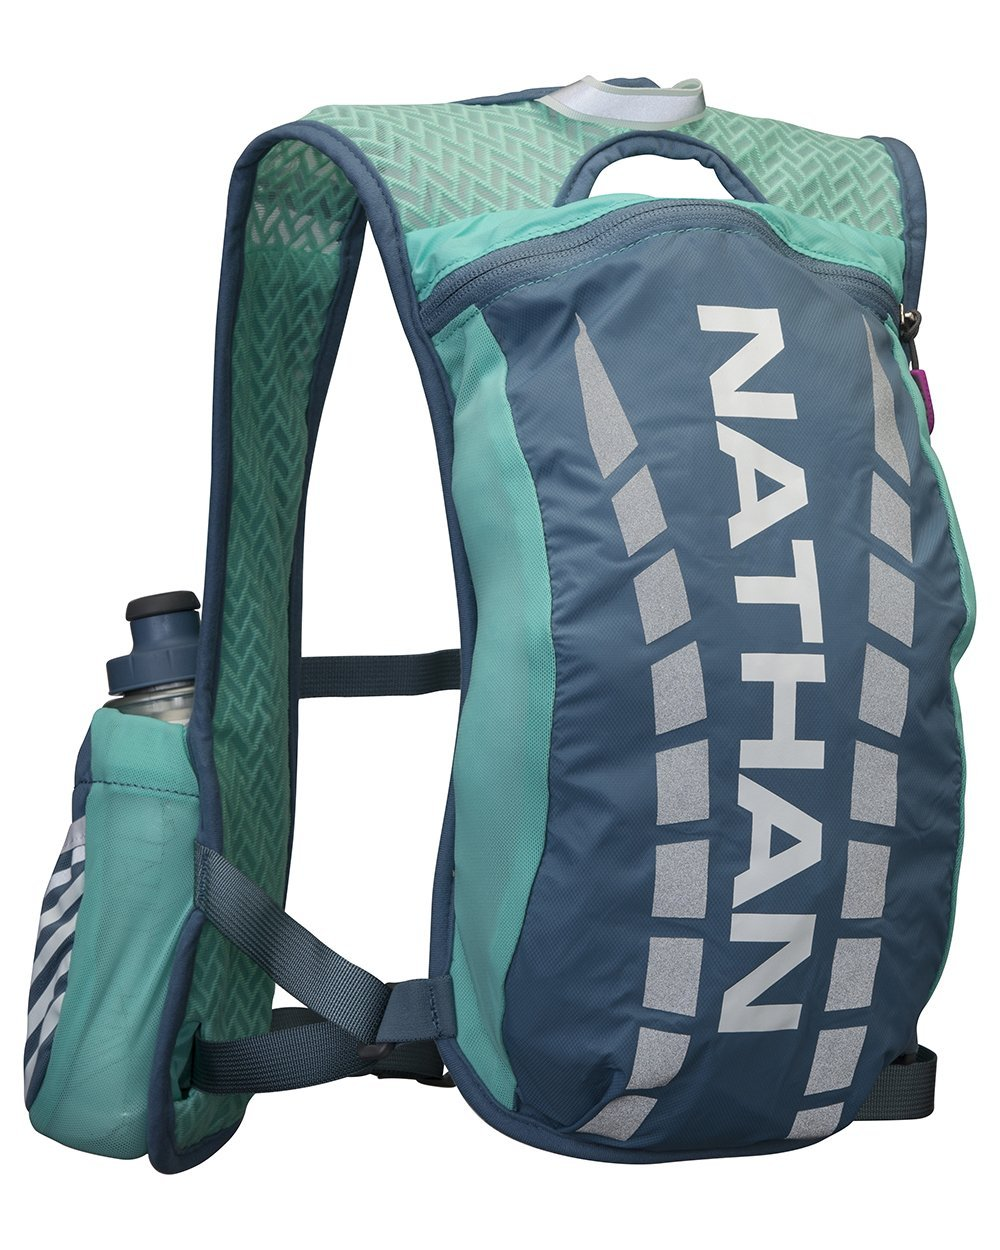 Nathan Fireball Race Vest, Cockatoo, One Size